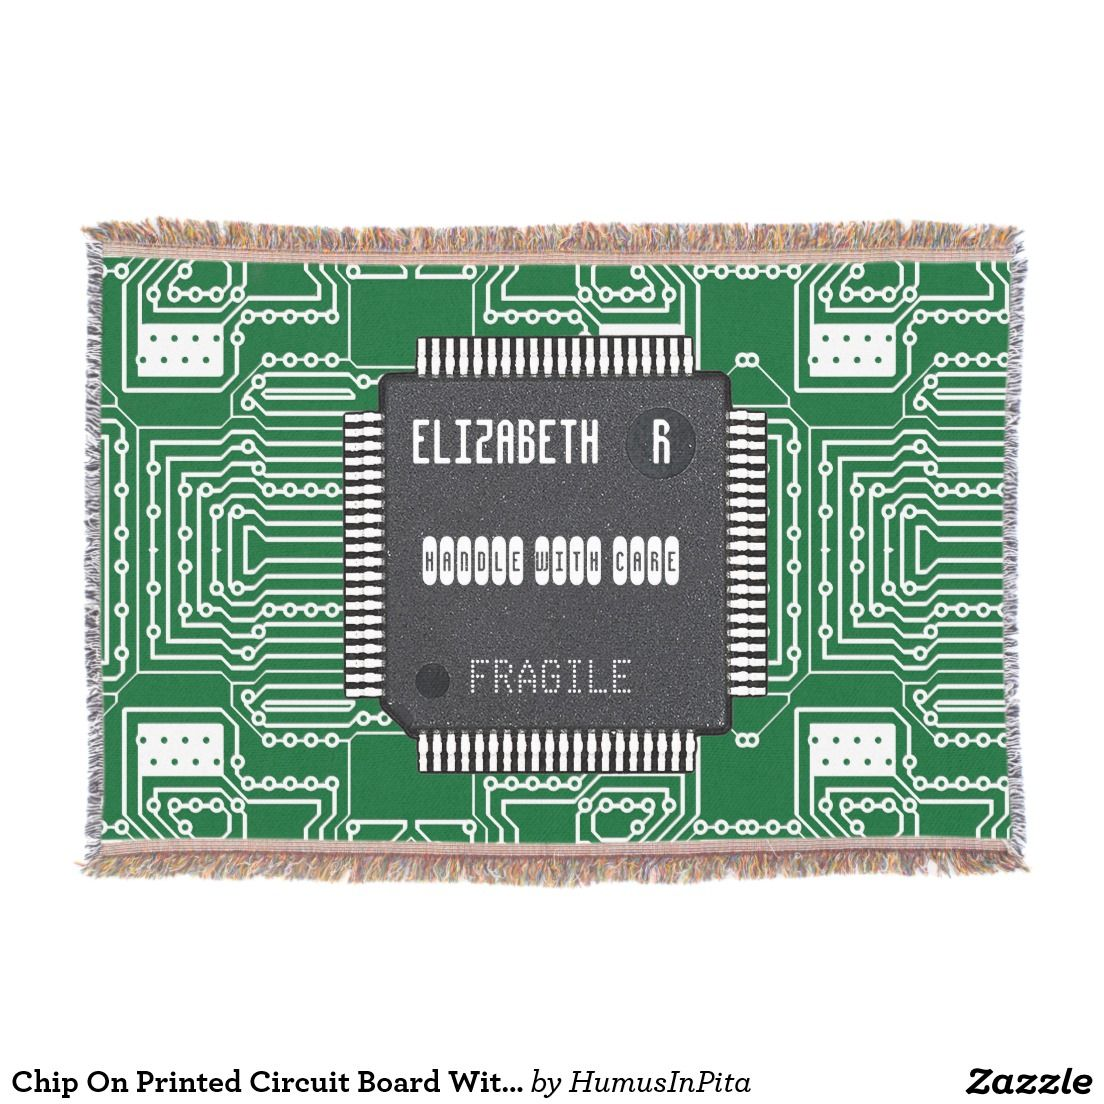 Chip On Printed Circuit Board With Your Name Throw Wear Different As Before We Can Copy The Onto A And